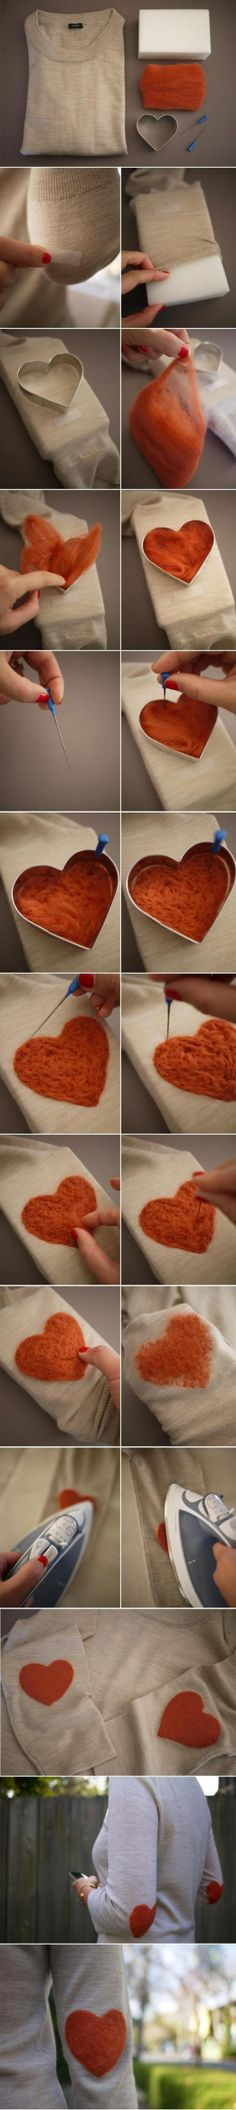 Great patching solution for sweaters!  #DIY #crafty fashion